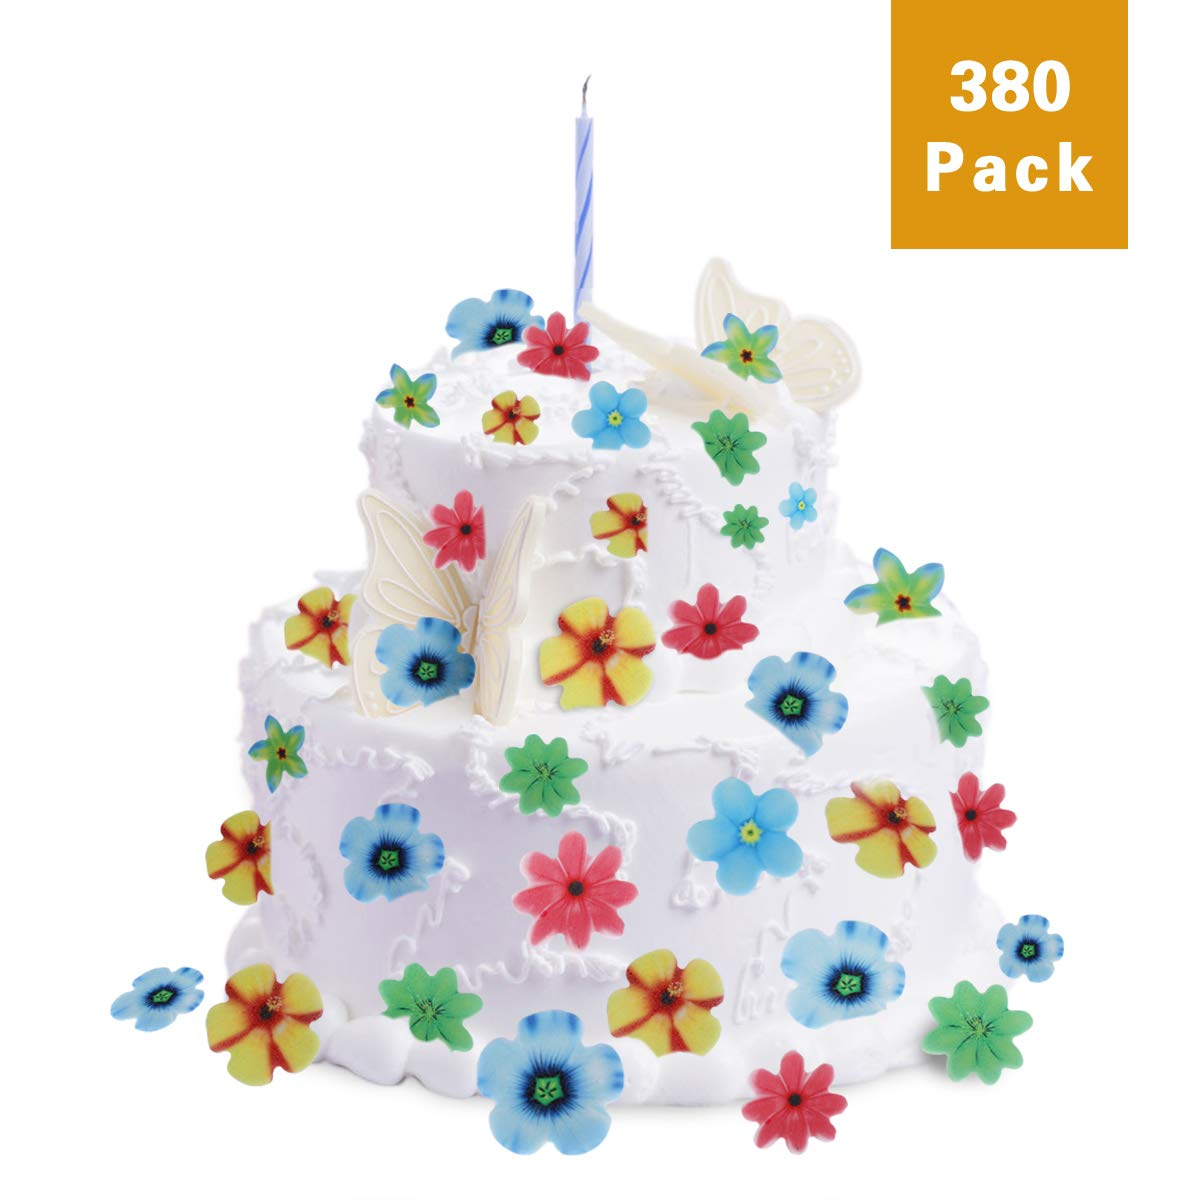 FishMM Set of 380 Edible Rainbow Flowers Party Decorations, Wafer Rice Paper for Cake, Cakecup, Food, Fruit, Wedding Table Decorations Toppers